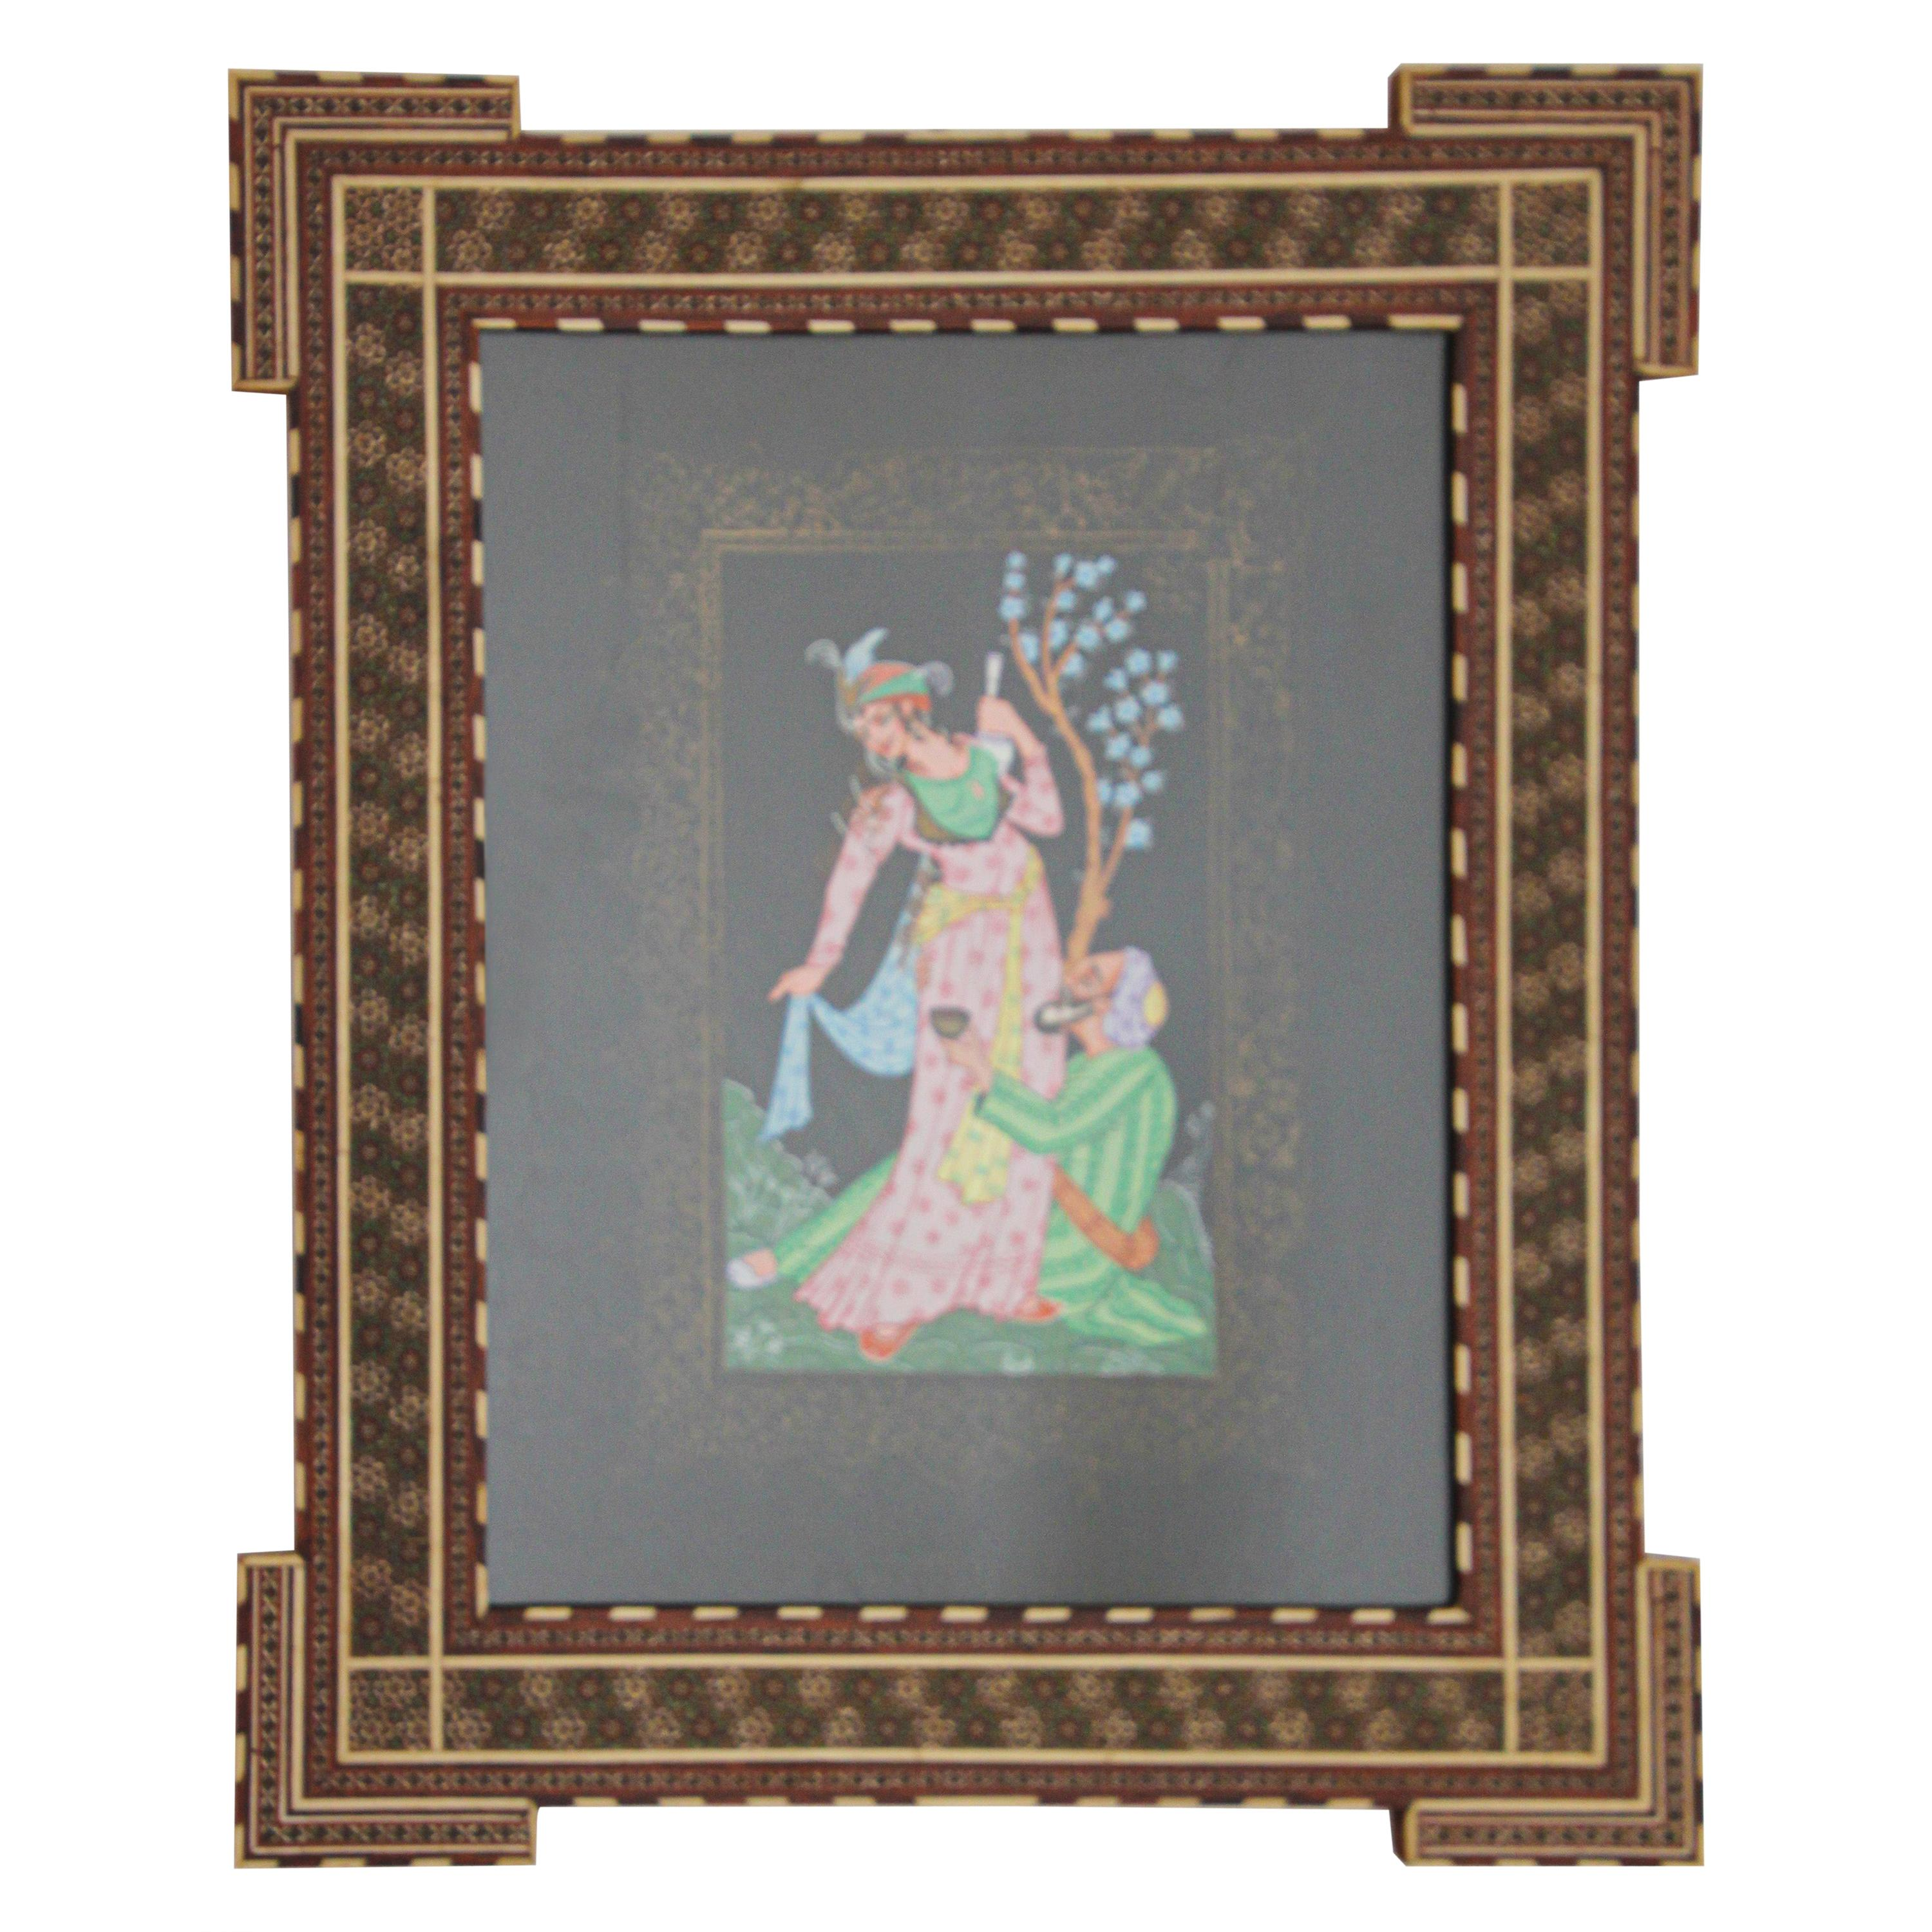 Indo Persian 19th Century Indian Mughal Scene Miniature Painting